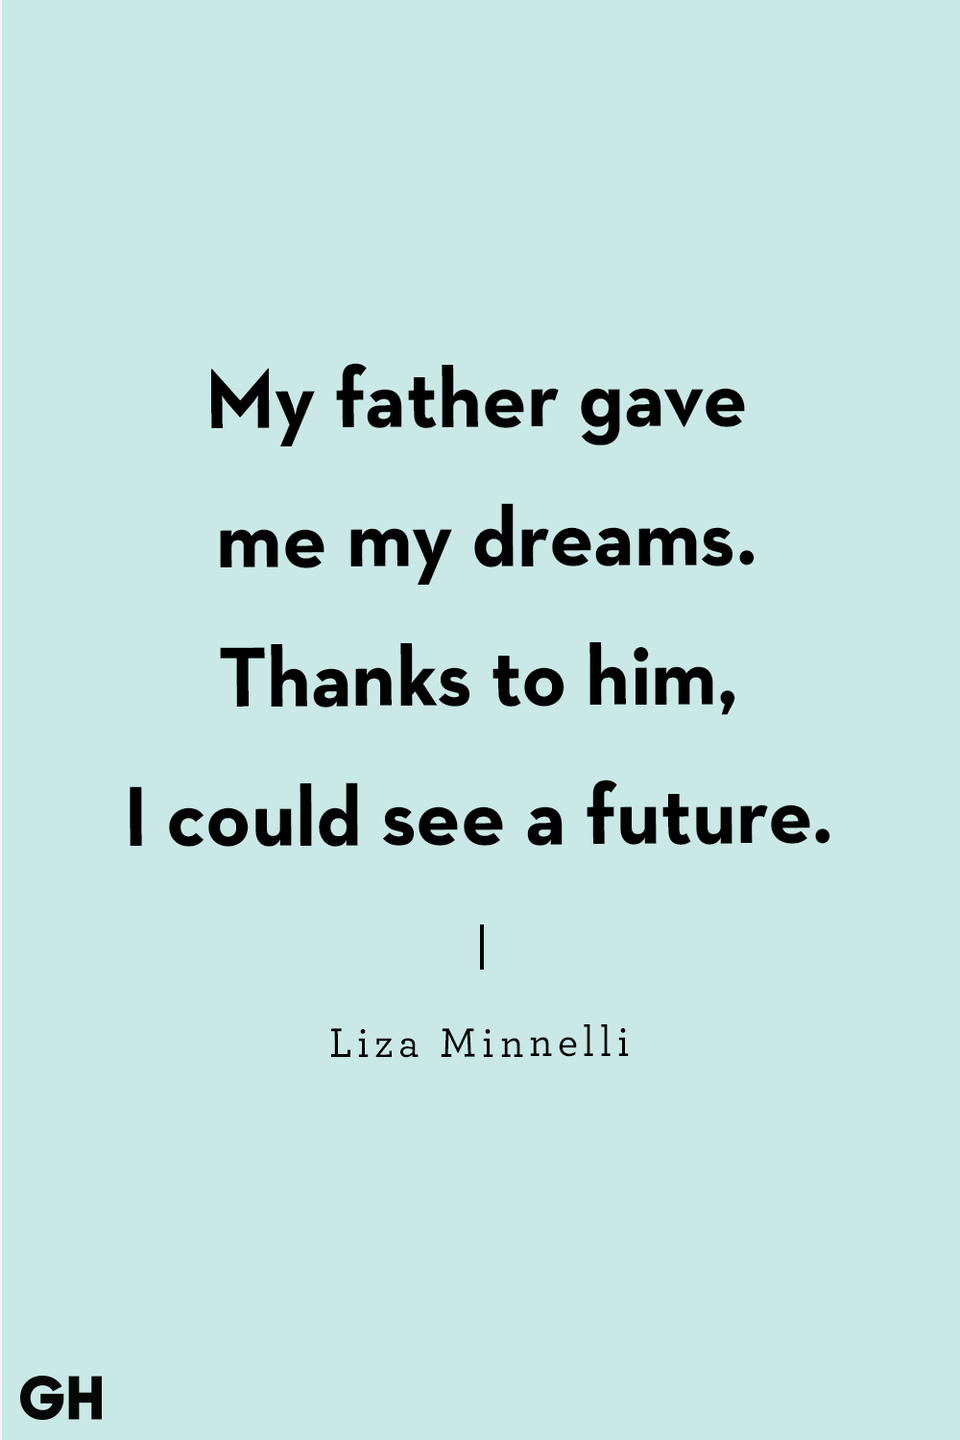 <p>My father gave me my dreams. Thanks to him, I could see a future.</p>